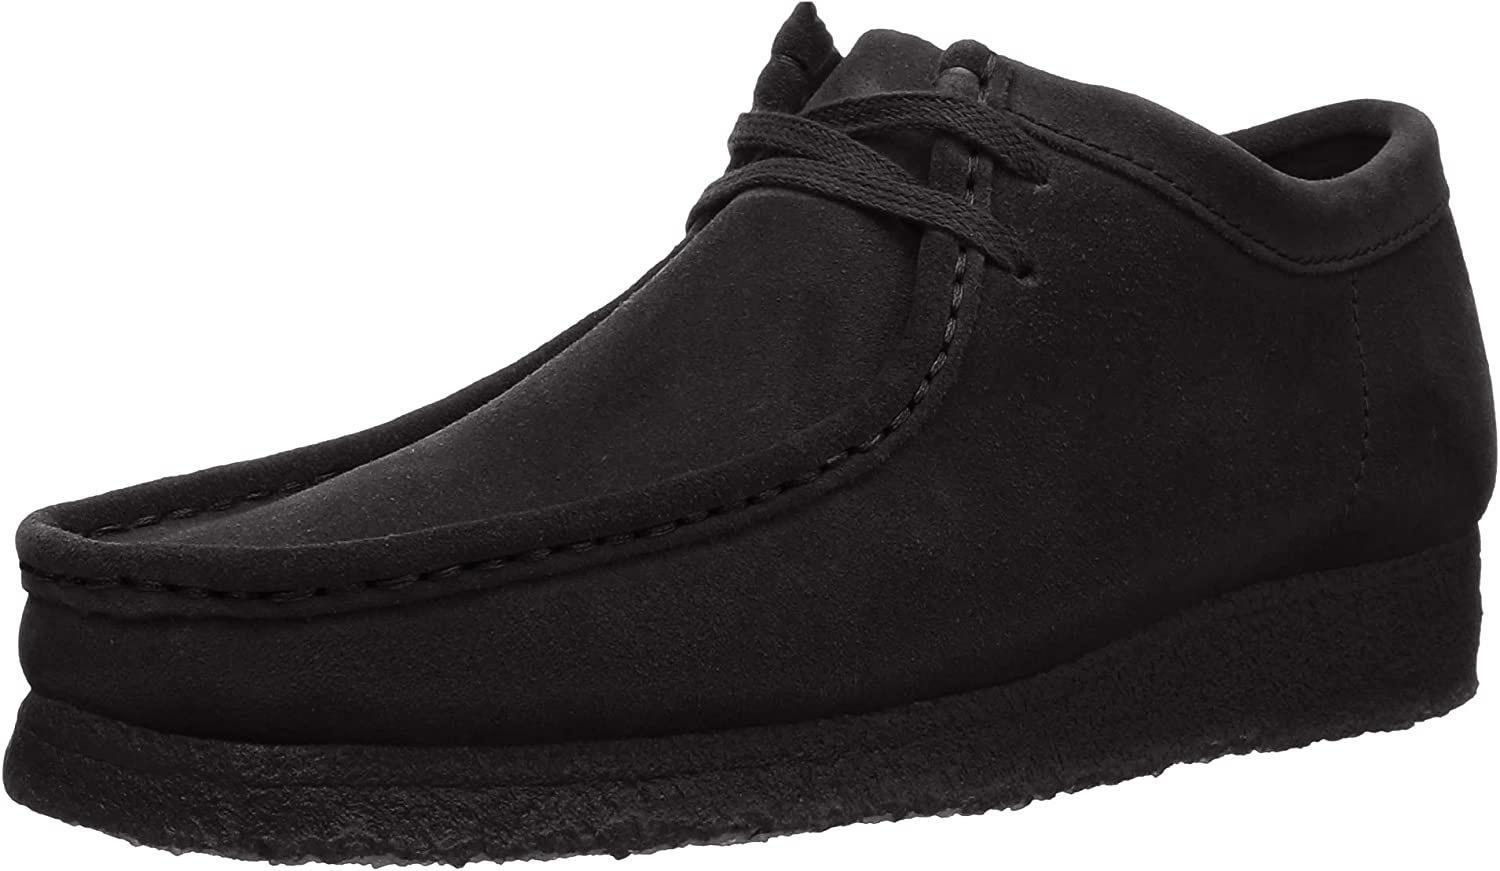 Clarks Originals Men's Wallabee Derbys